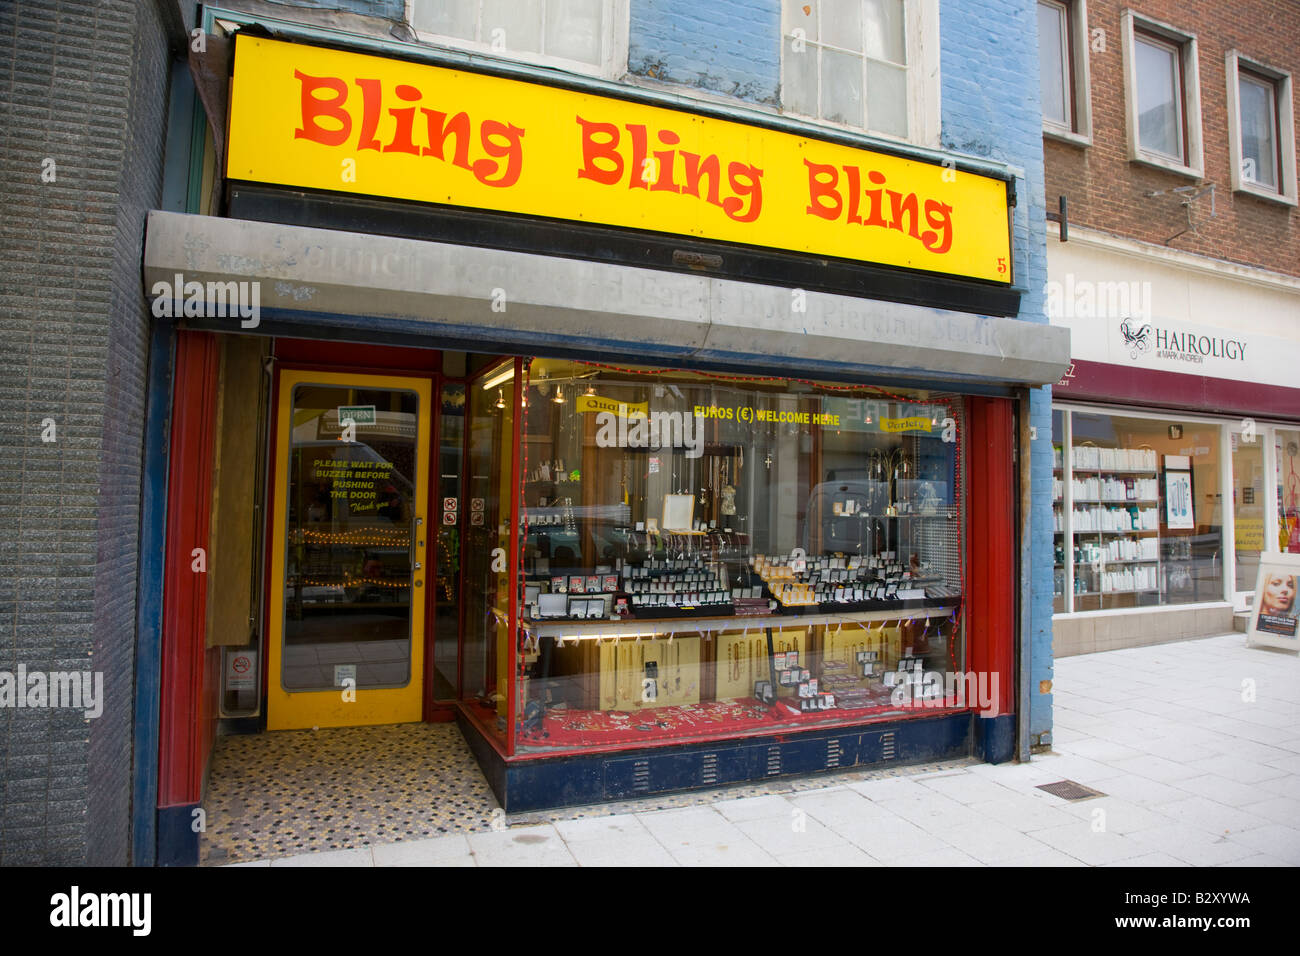 Bling Bling Bling a jewellery shop in Margate Kent - Stock Image